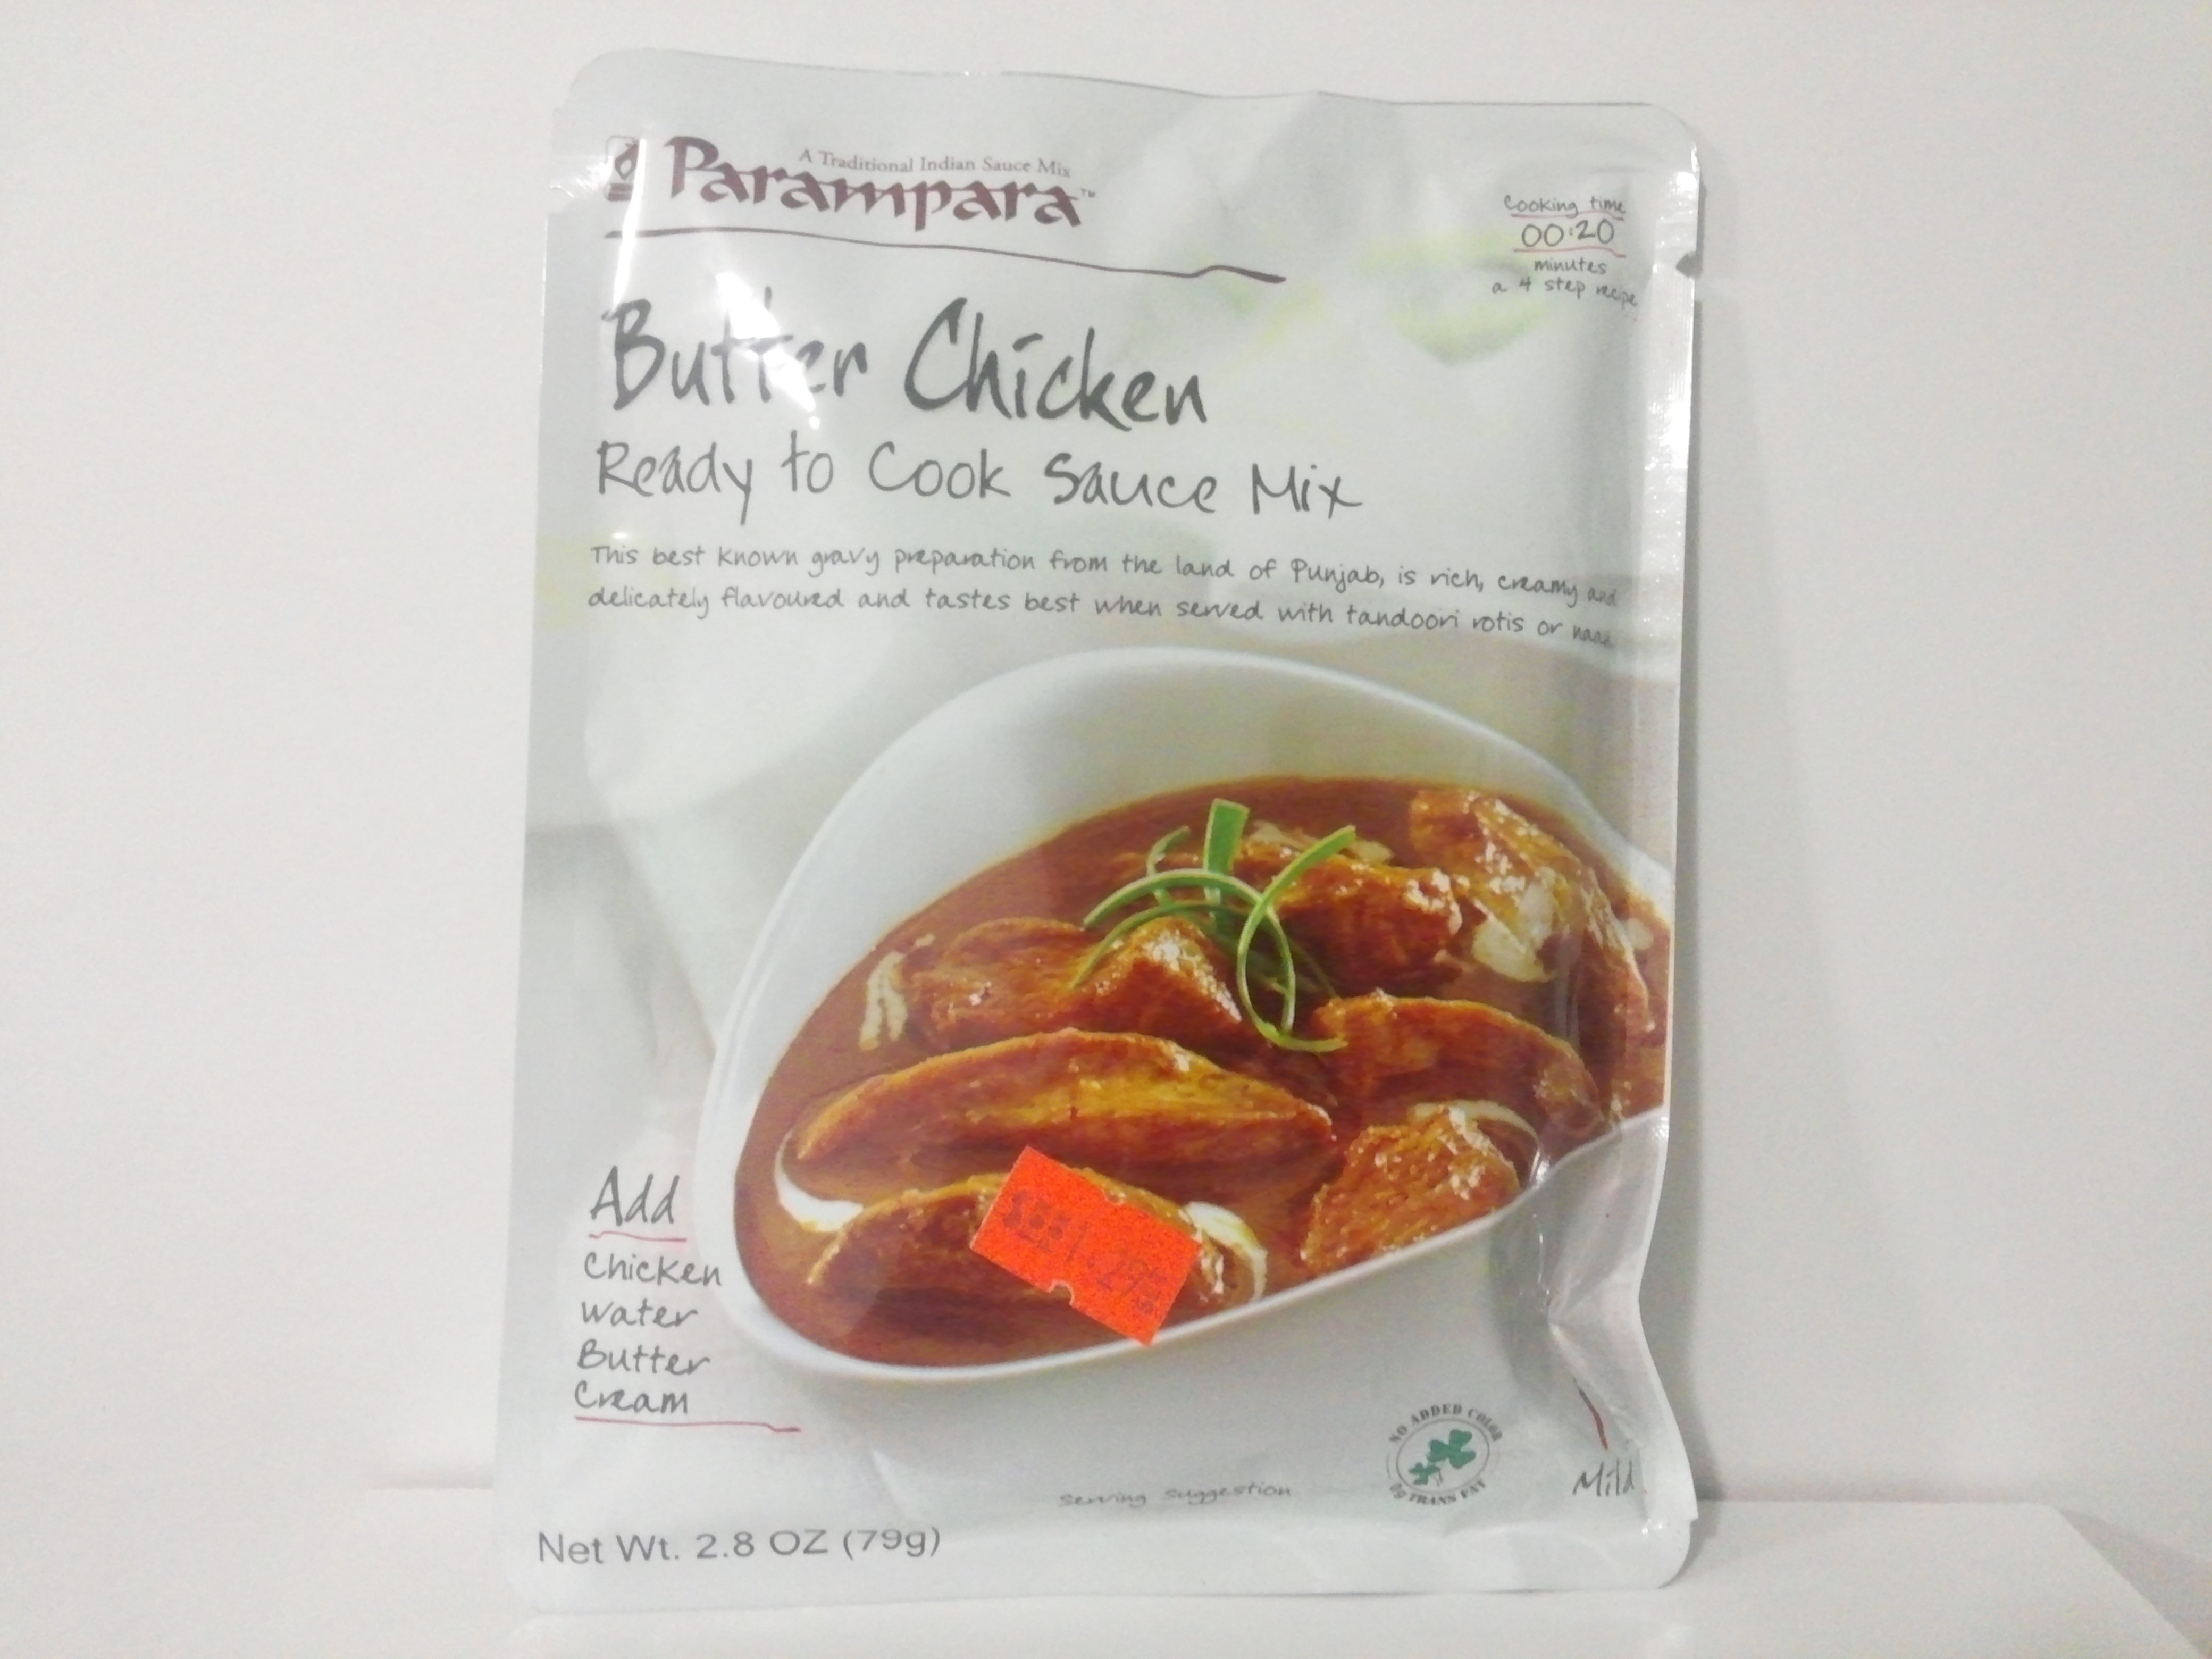 Parampara Butter Chicken Mix 2.8 oz